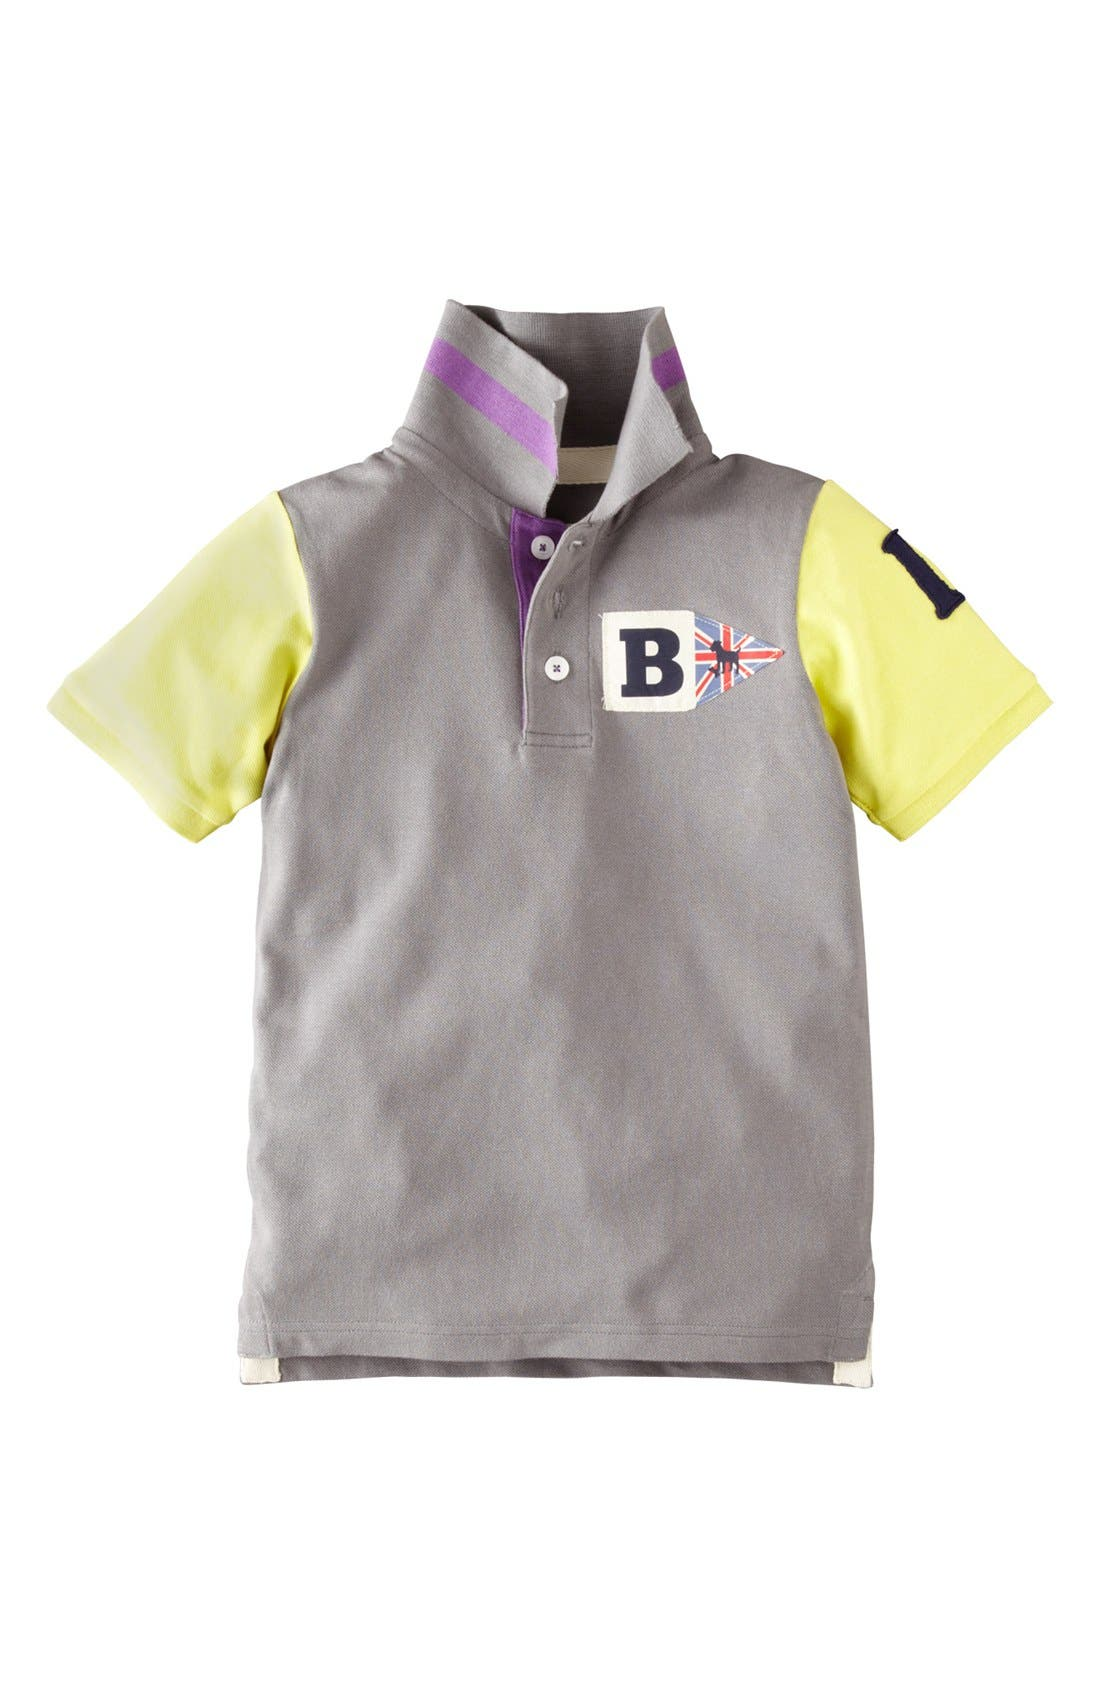 Alternate Image 1 Selected - Mini Boden Colorblock Polo Shirt (Toddler Boys, Little Boys & Big Boys)